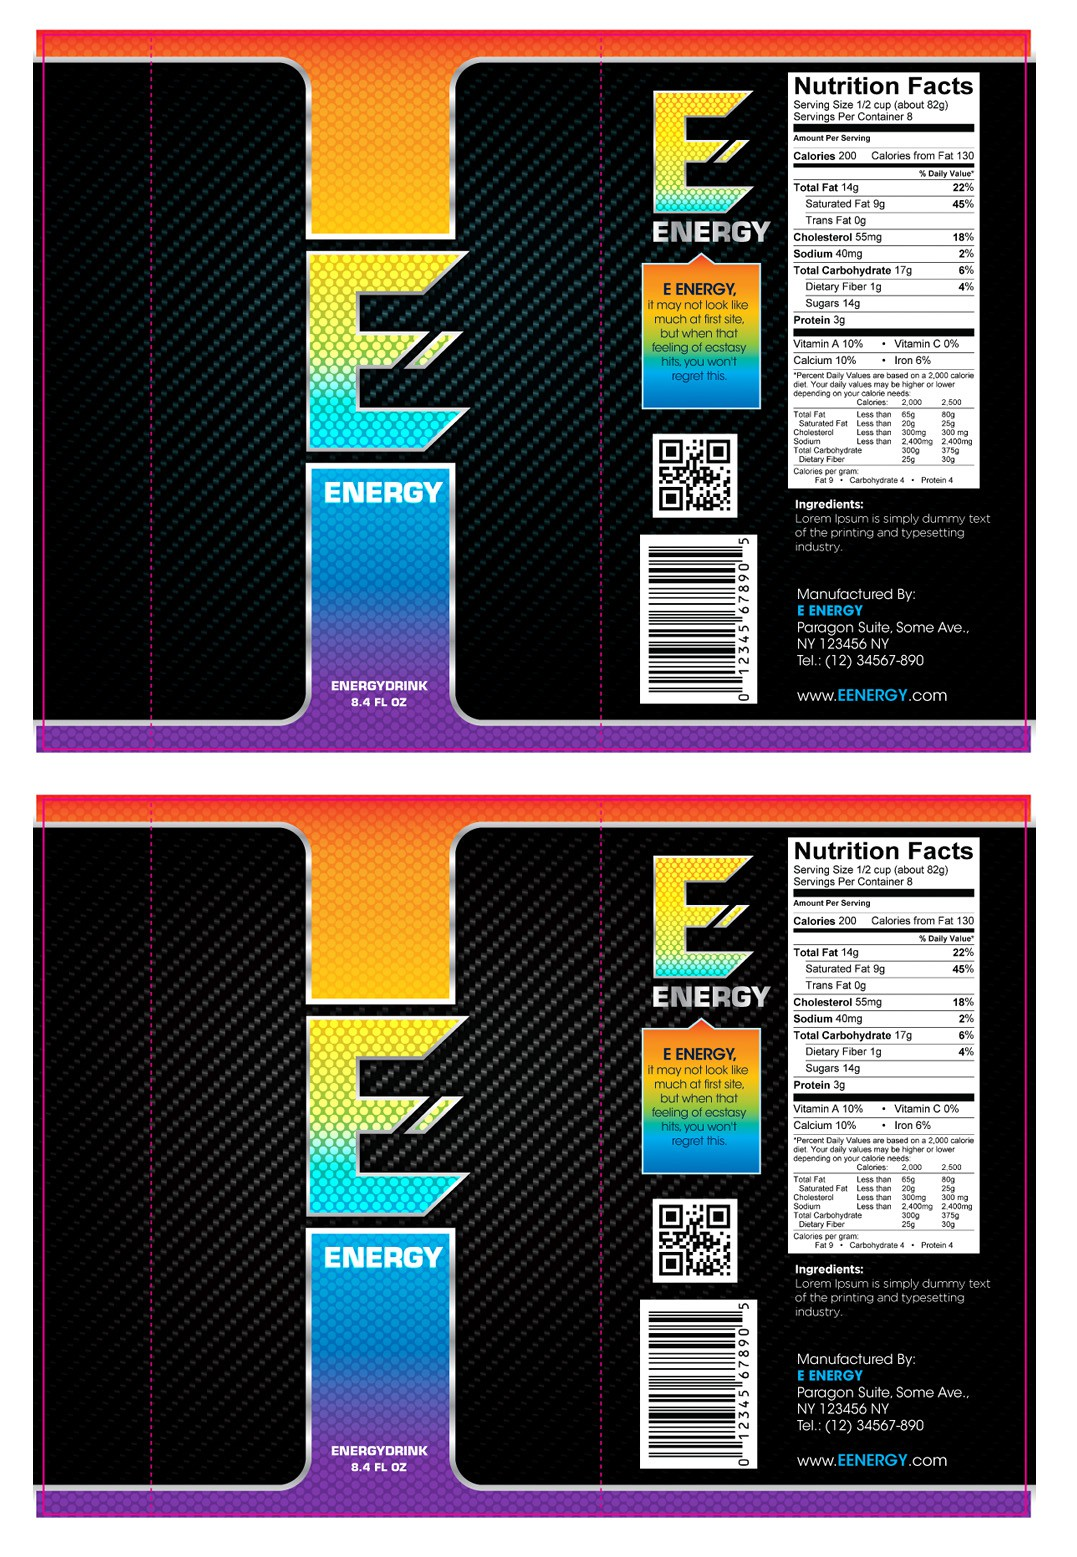 E Energy needs a new product label